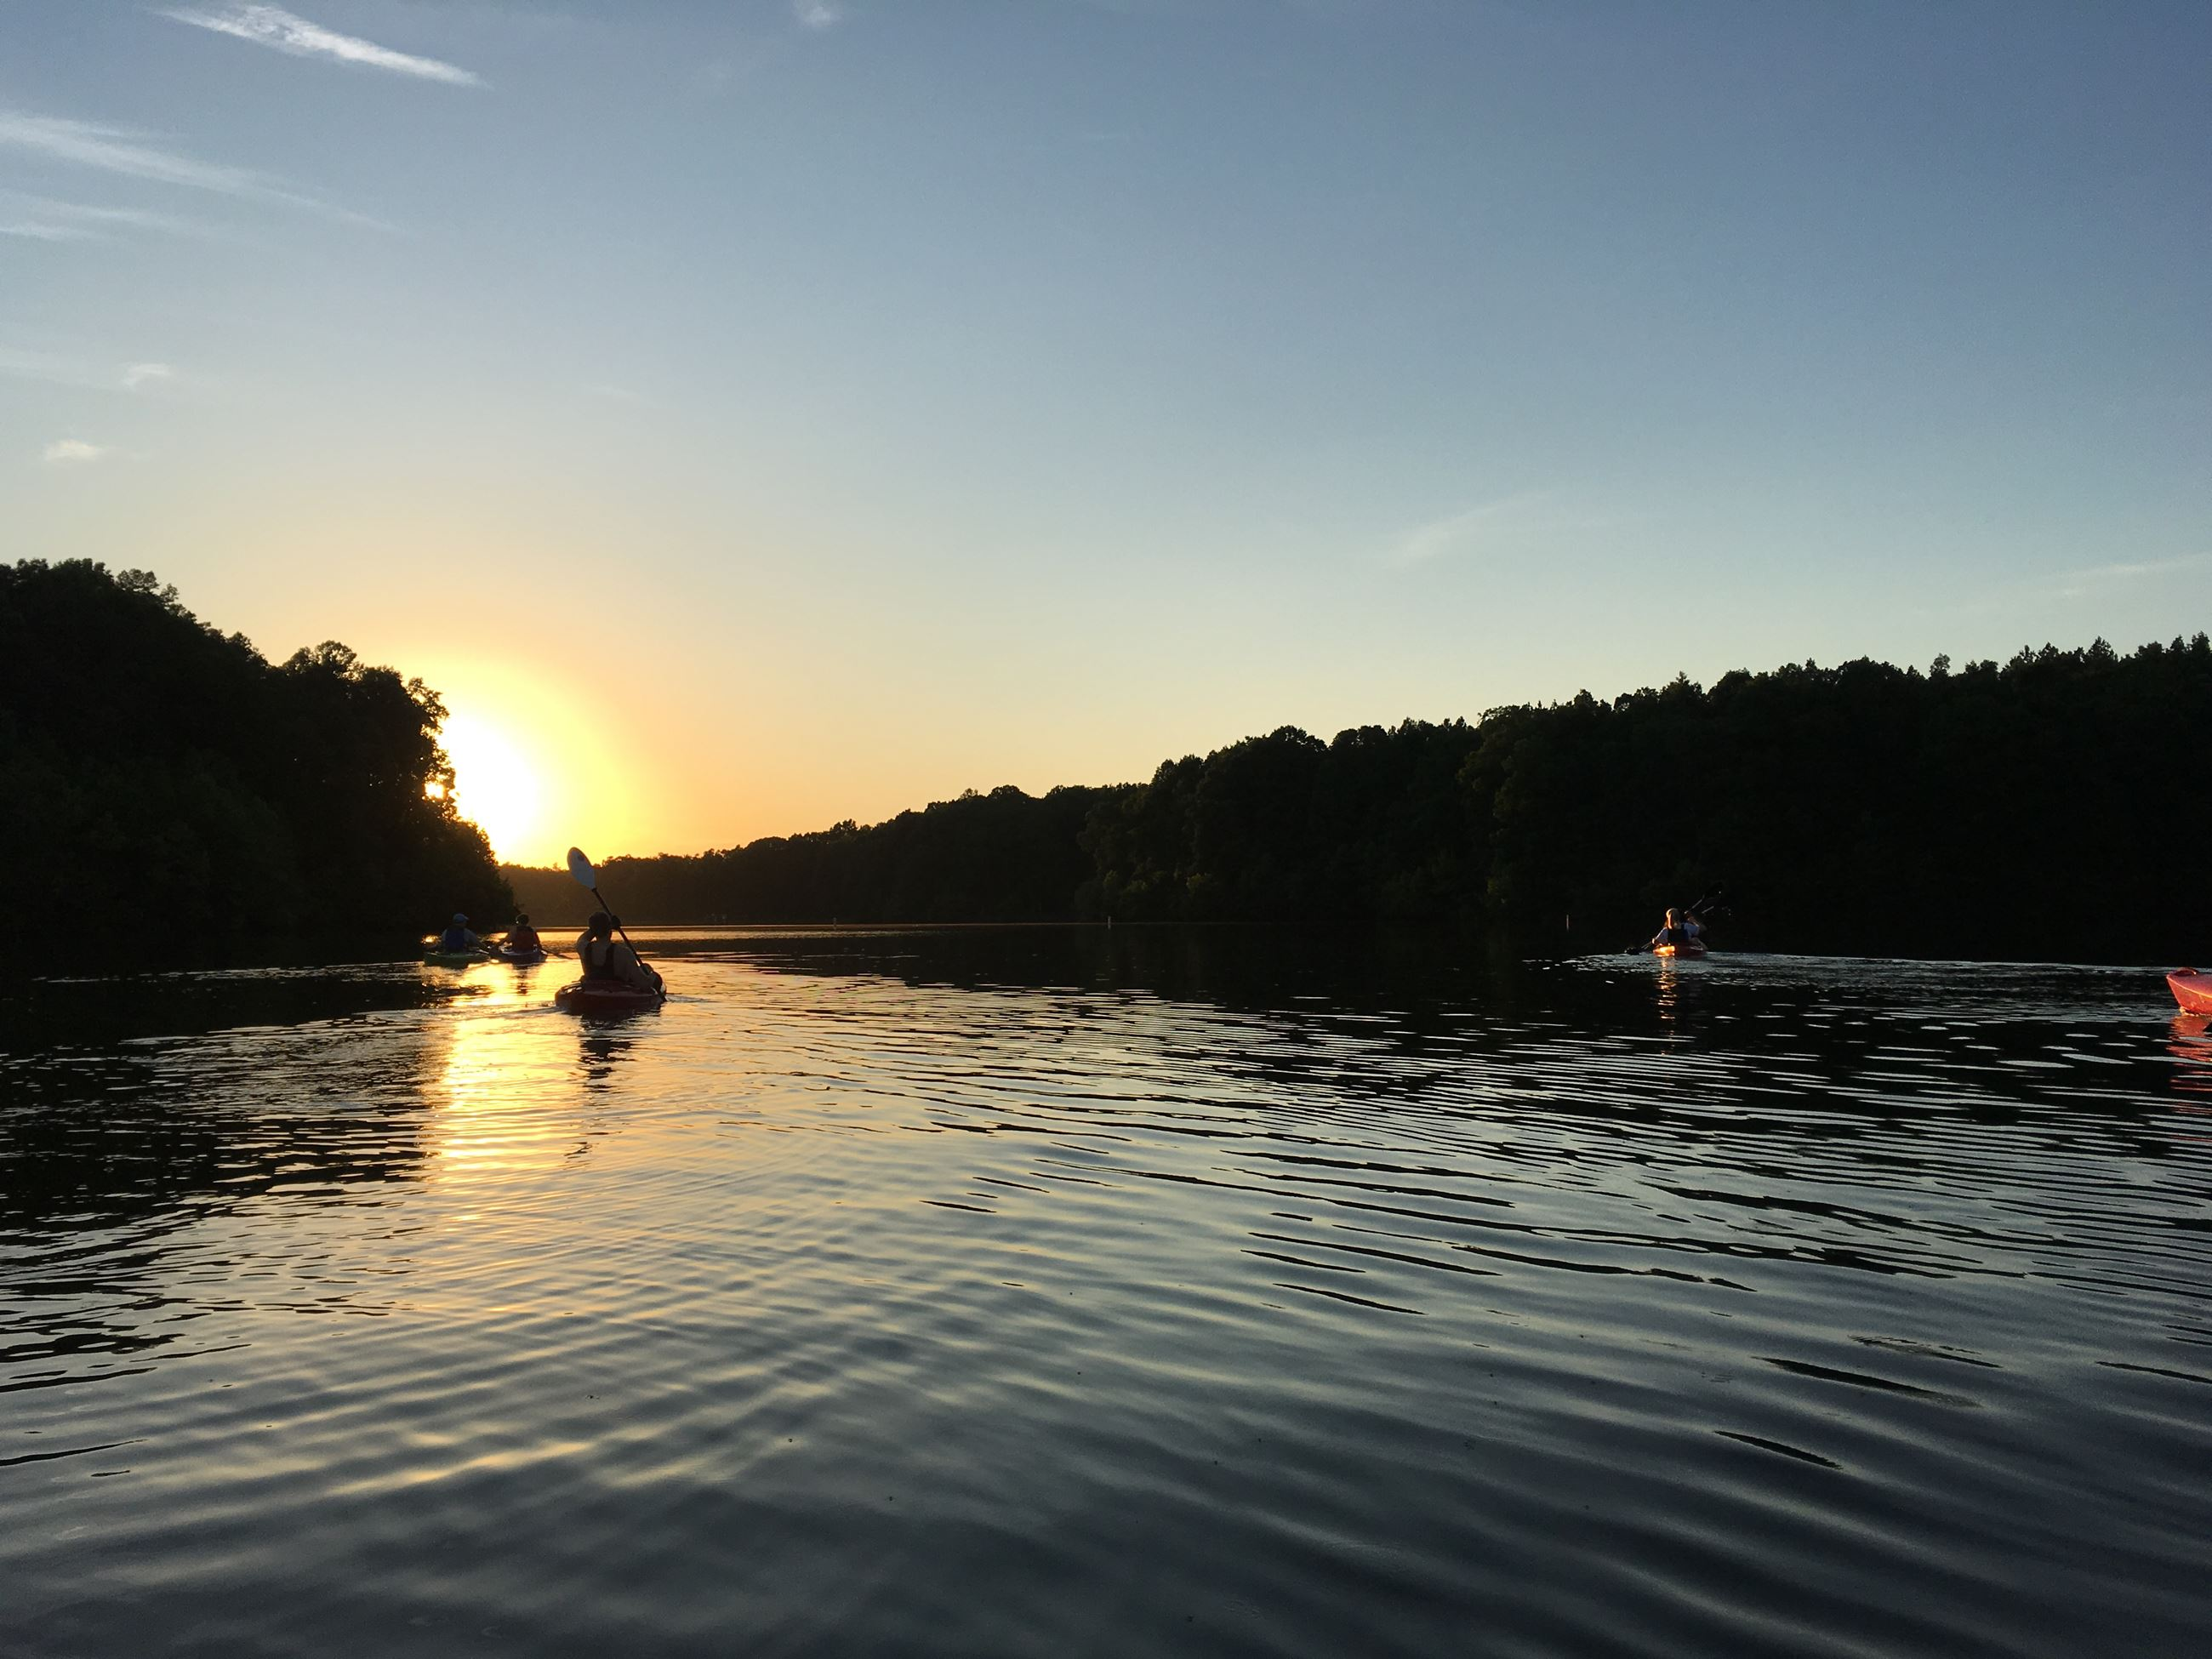 Sunset Paddle 0614 09